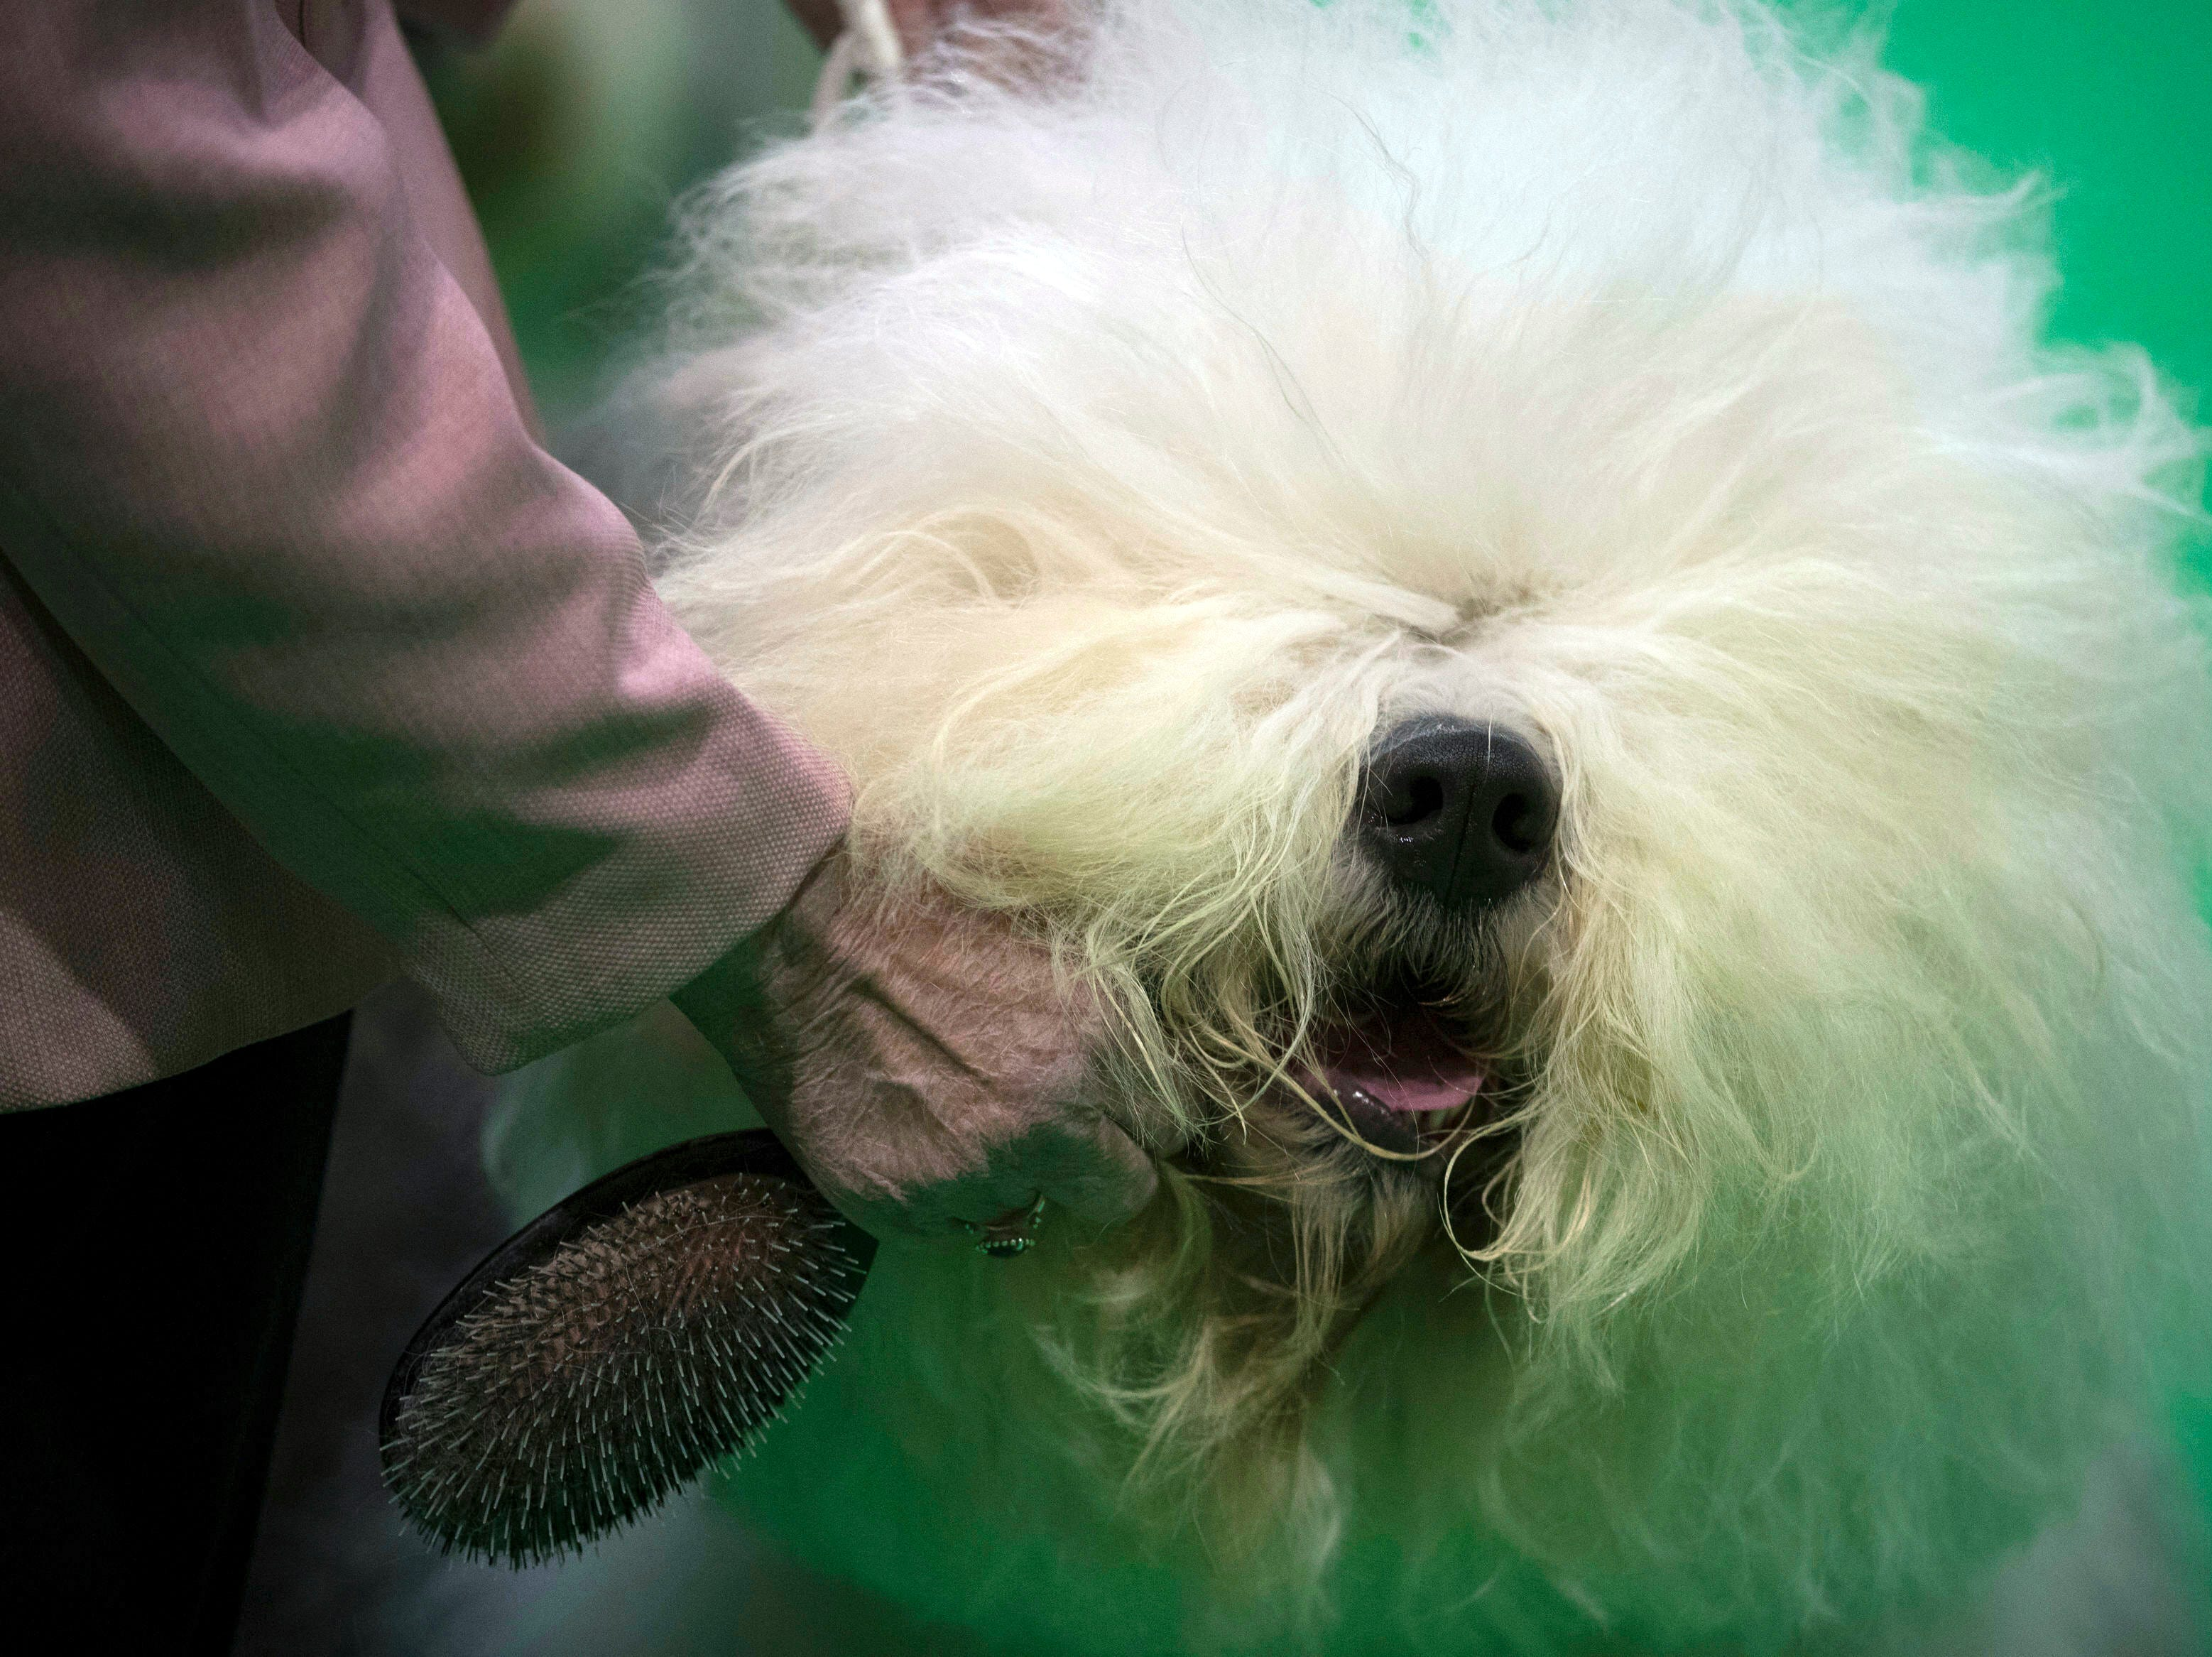 An old English sheep dog is groomed at the Birmingham National Exhibition Centre on the second day of the Crufts Dog Show in Birmingham, England, Friday, March 8, 2019.